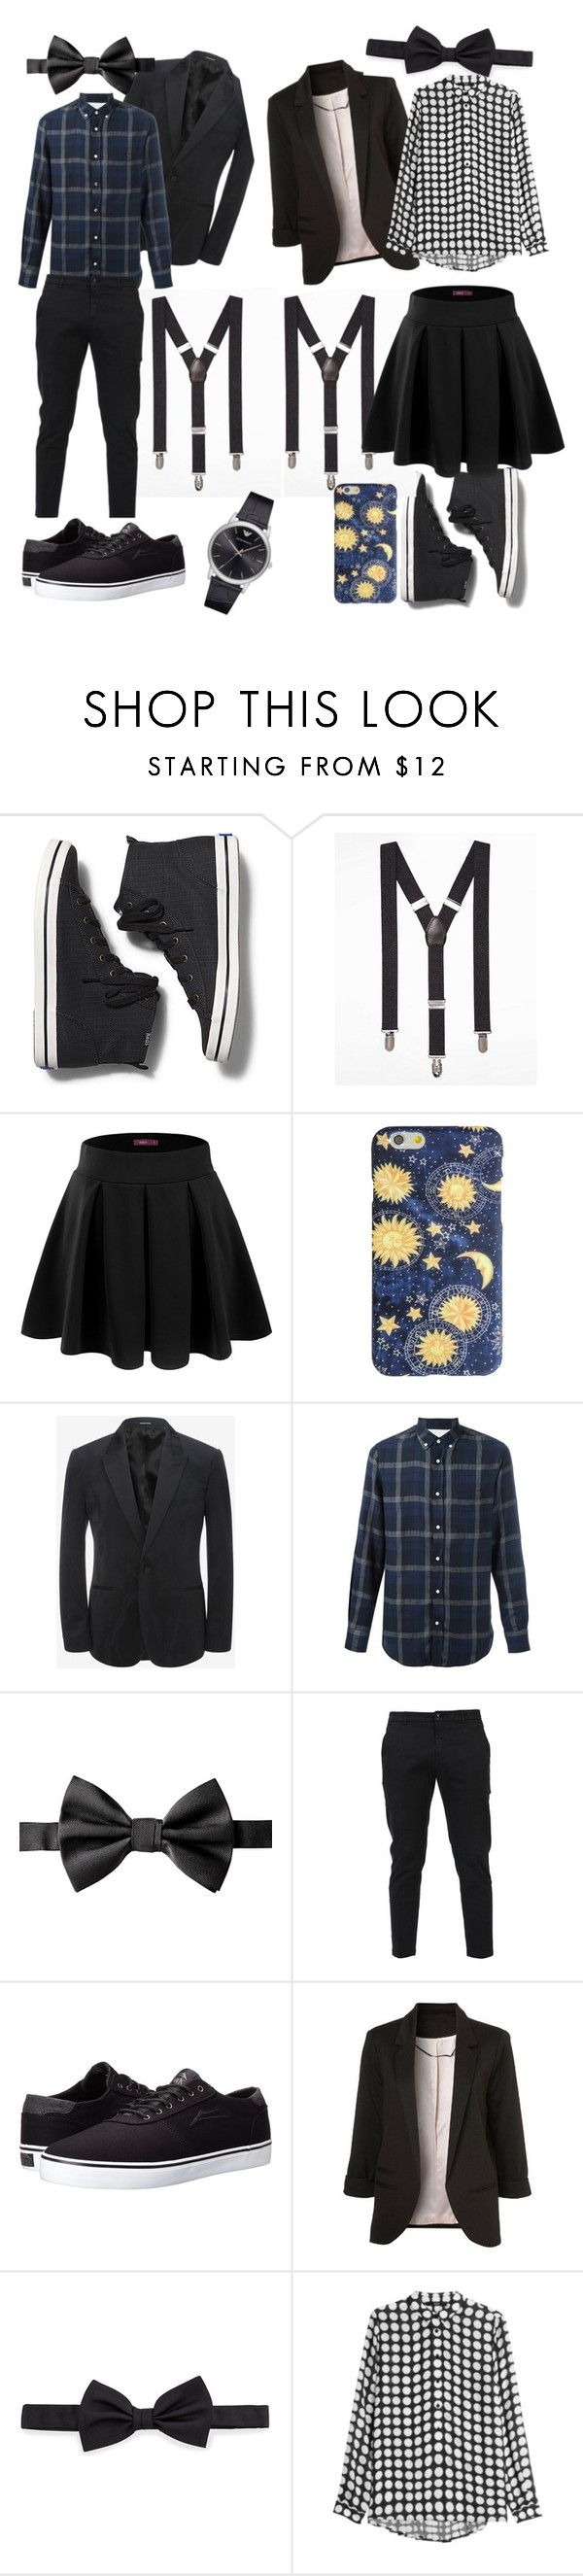 """доктор кто..."" by elizavetaprotasova ❤ liked on Polyvore featuring Keds, Express, Doublju, Alexander McQueen, Officine Generale, Department 5, Lakai, Lanvin, Steffen Schraut and Emporio Armani"